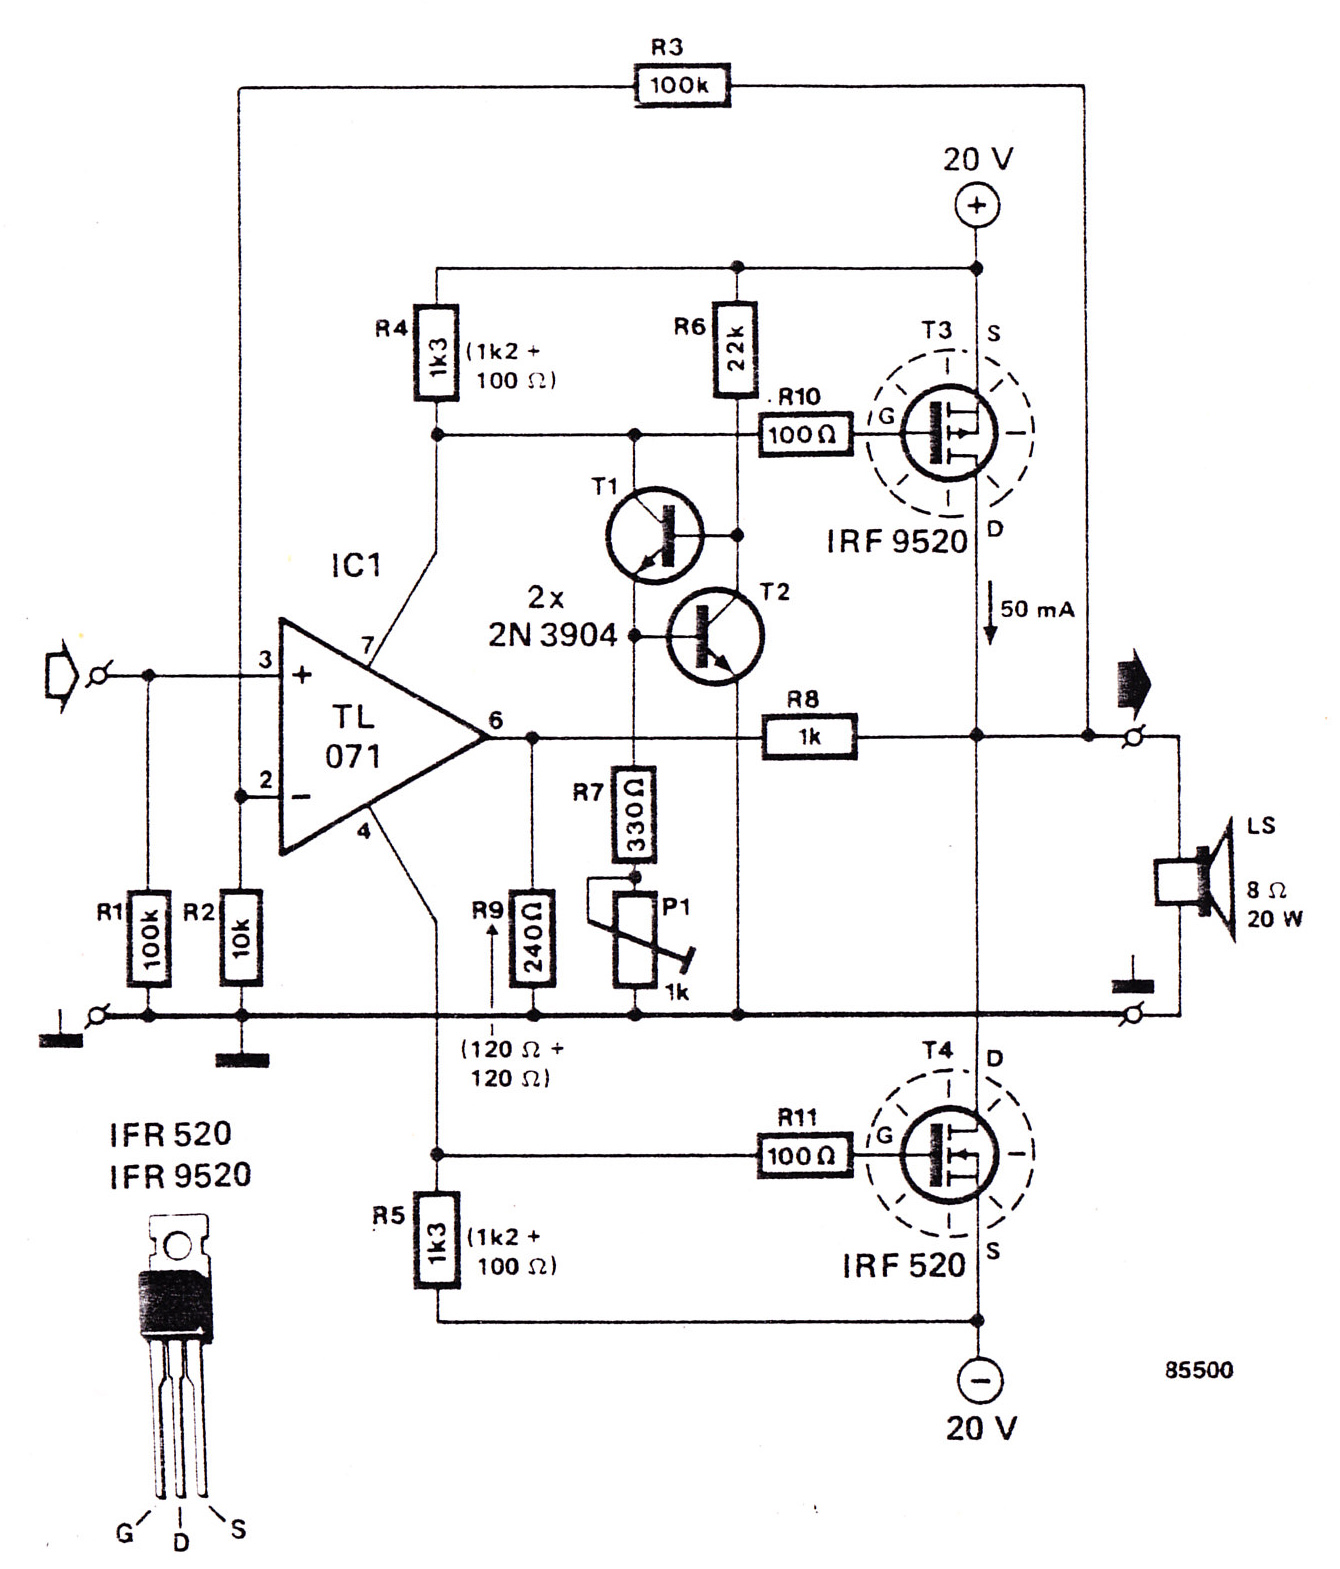 Circuit Diagram Of Digital Volume Control Wiring Diagrams Potentiometer Stereo Controls Audio Amplifier Electronic And Layout Speaker In Line Level